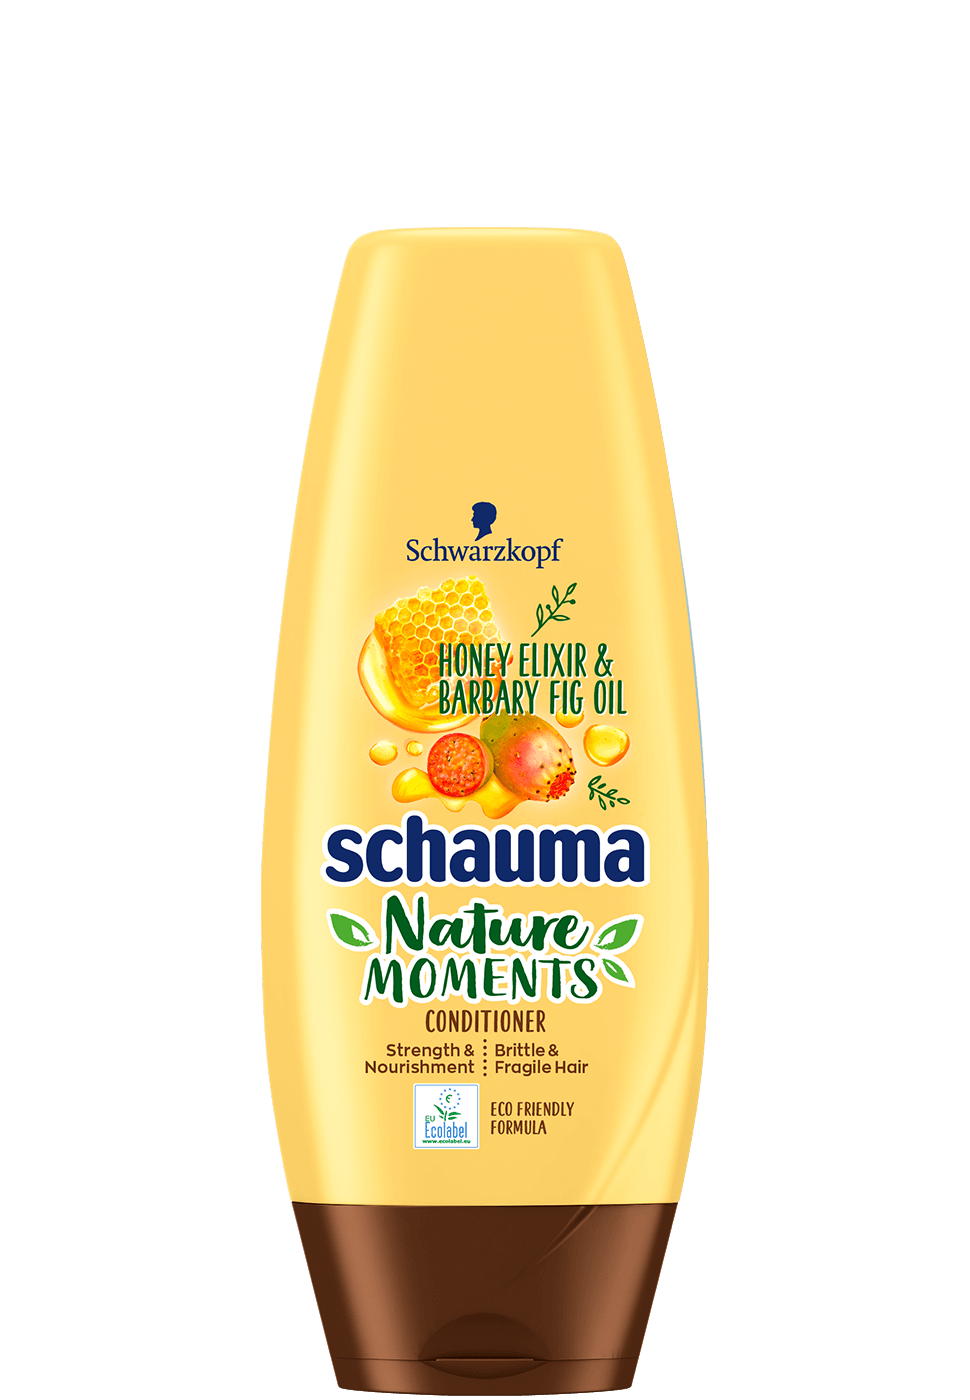 schauma_com_nature_moments_honey_elixir_conditioner_970x1400